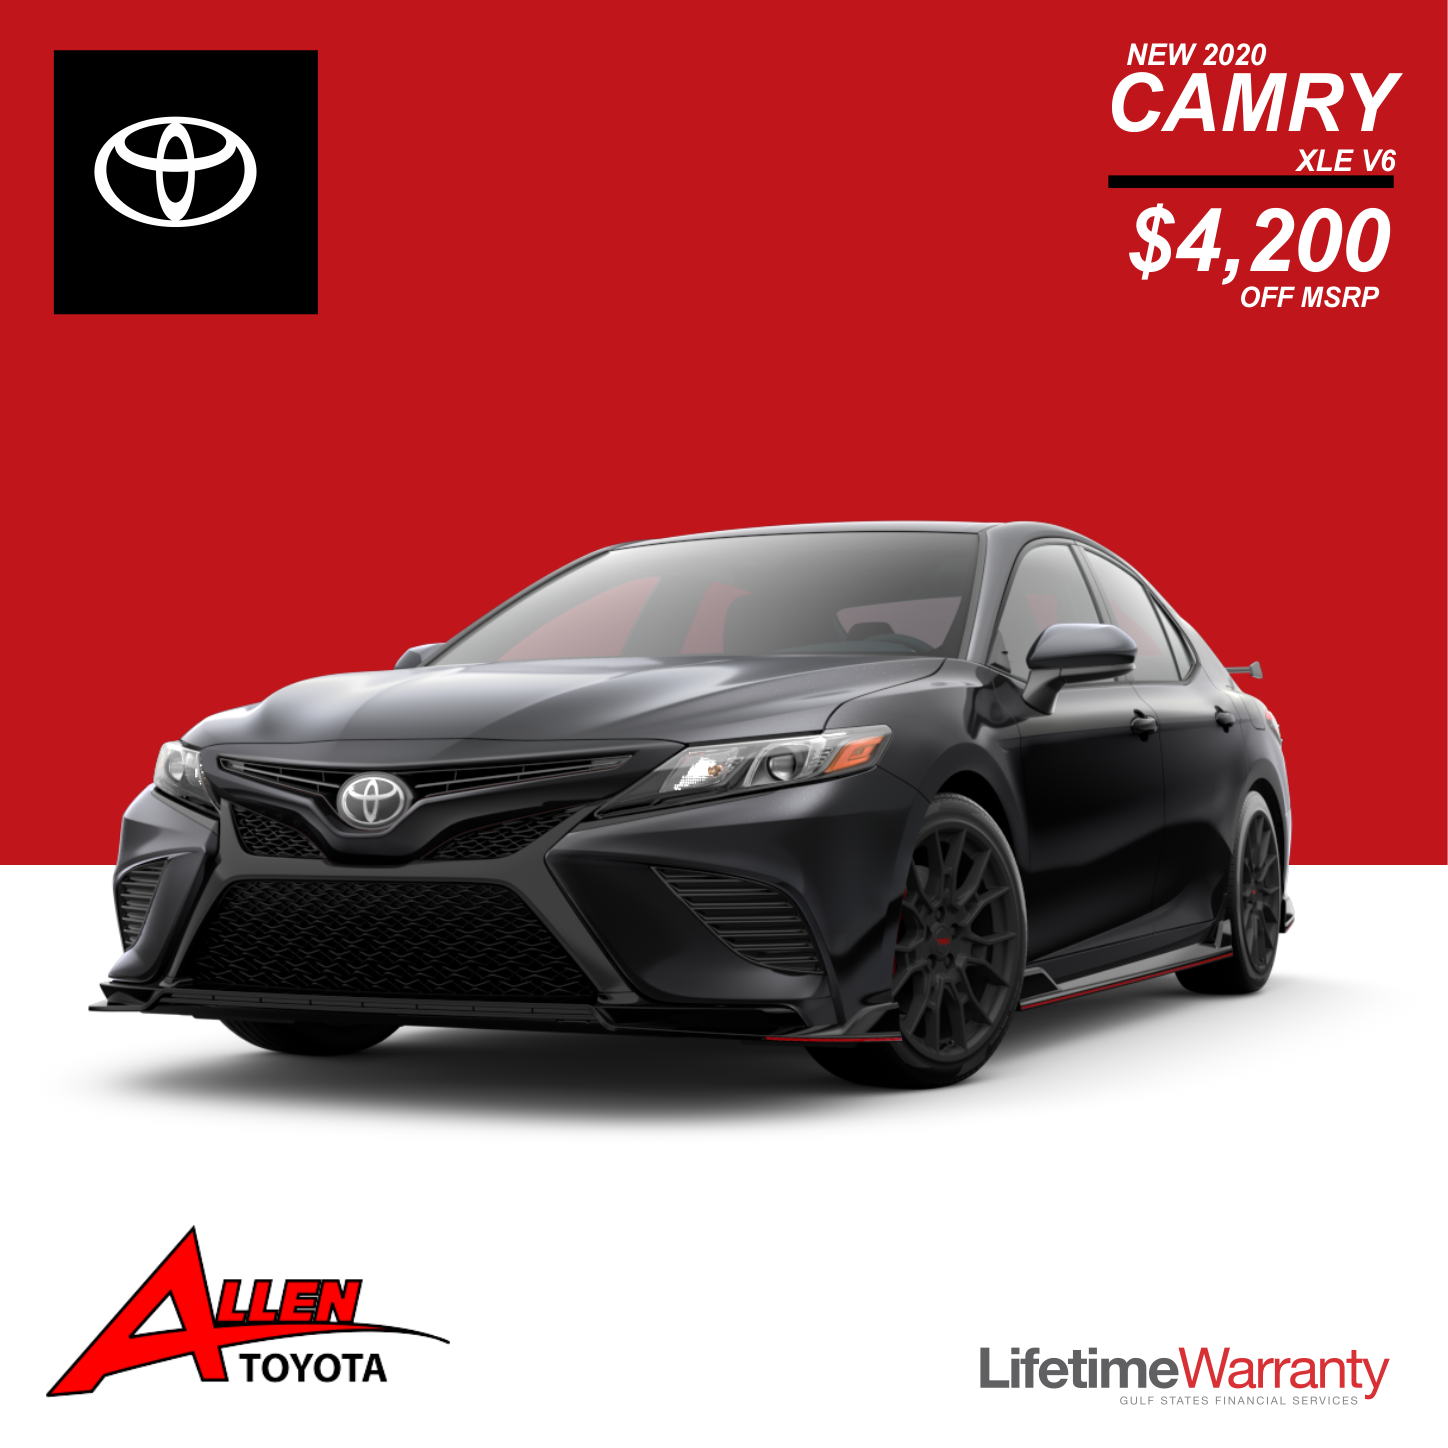 New 2020 Camry XLE V6